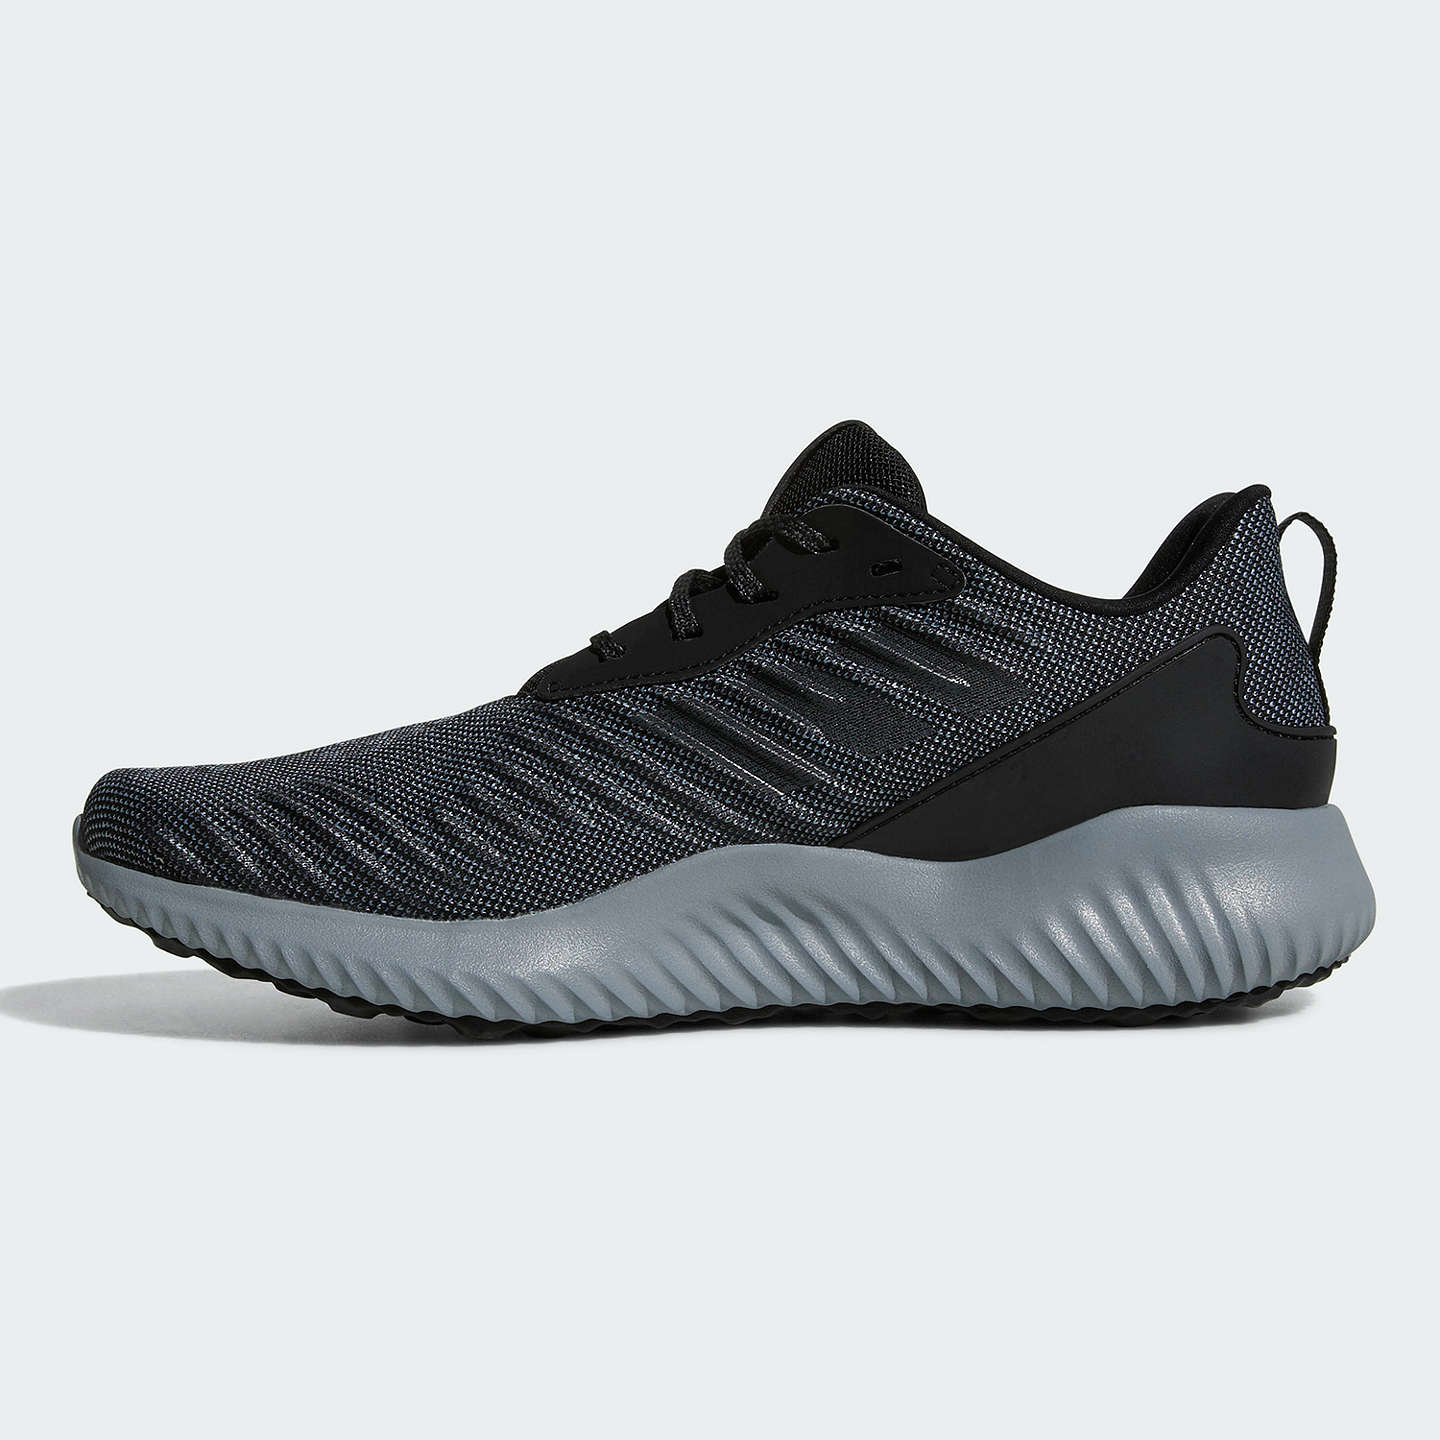 ... Buyadidas Alphabounce RC Men's Running Shoes, Black, 7 Online at  johnlewis.com